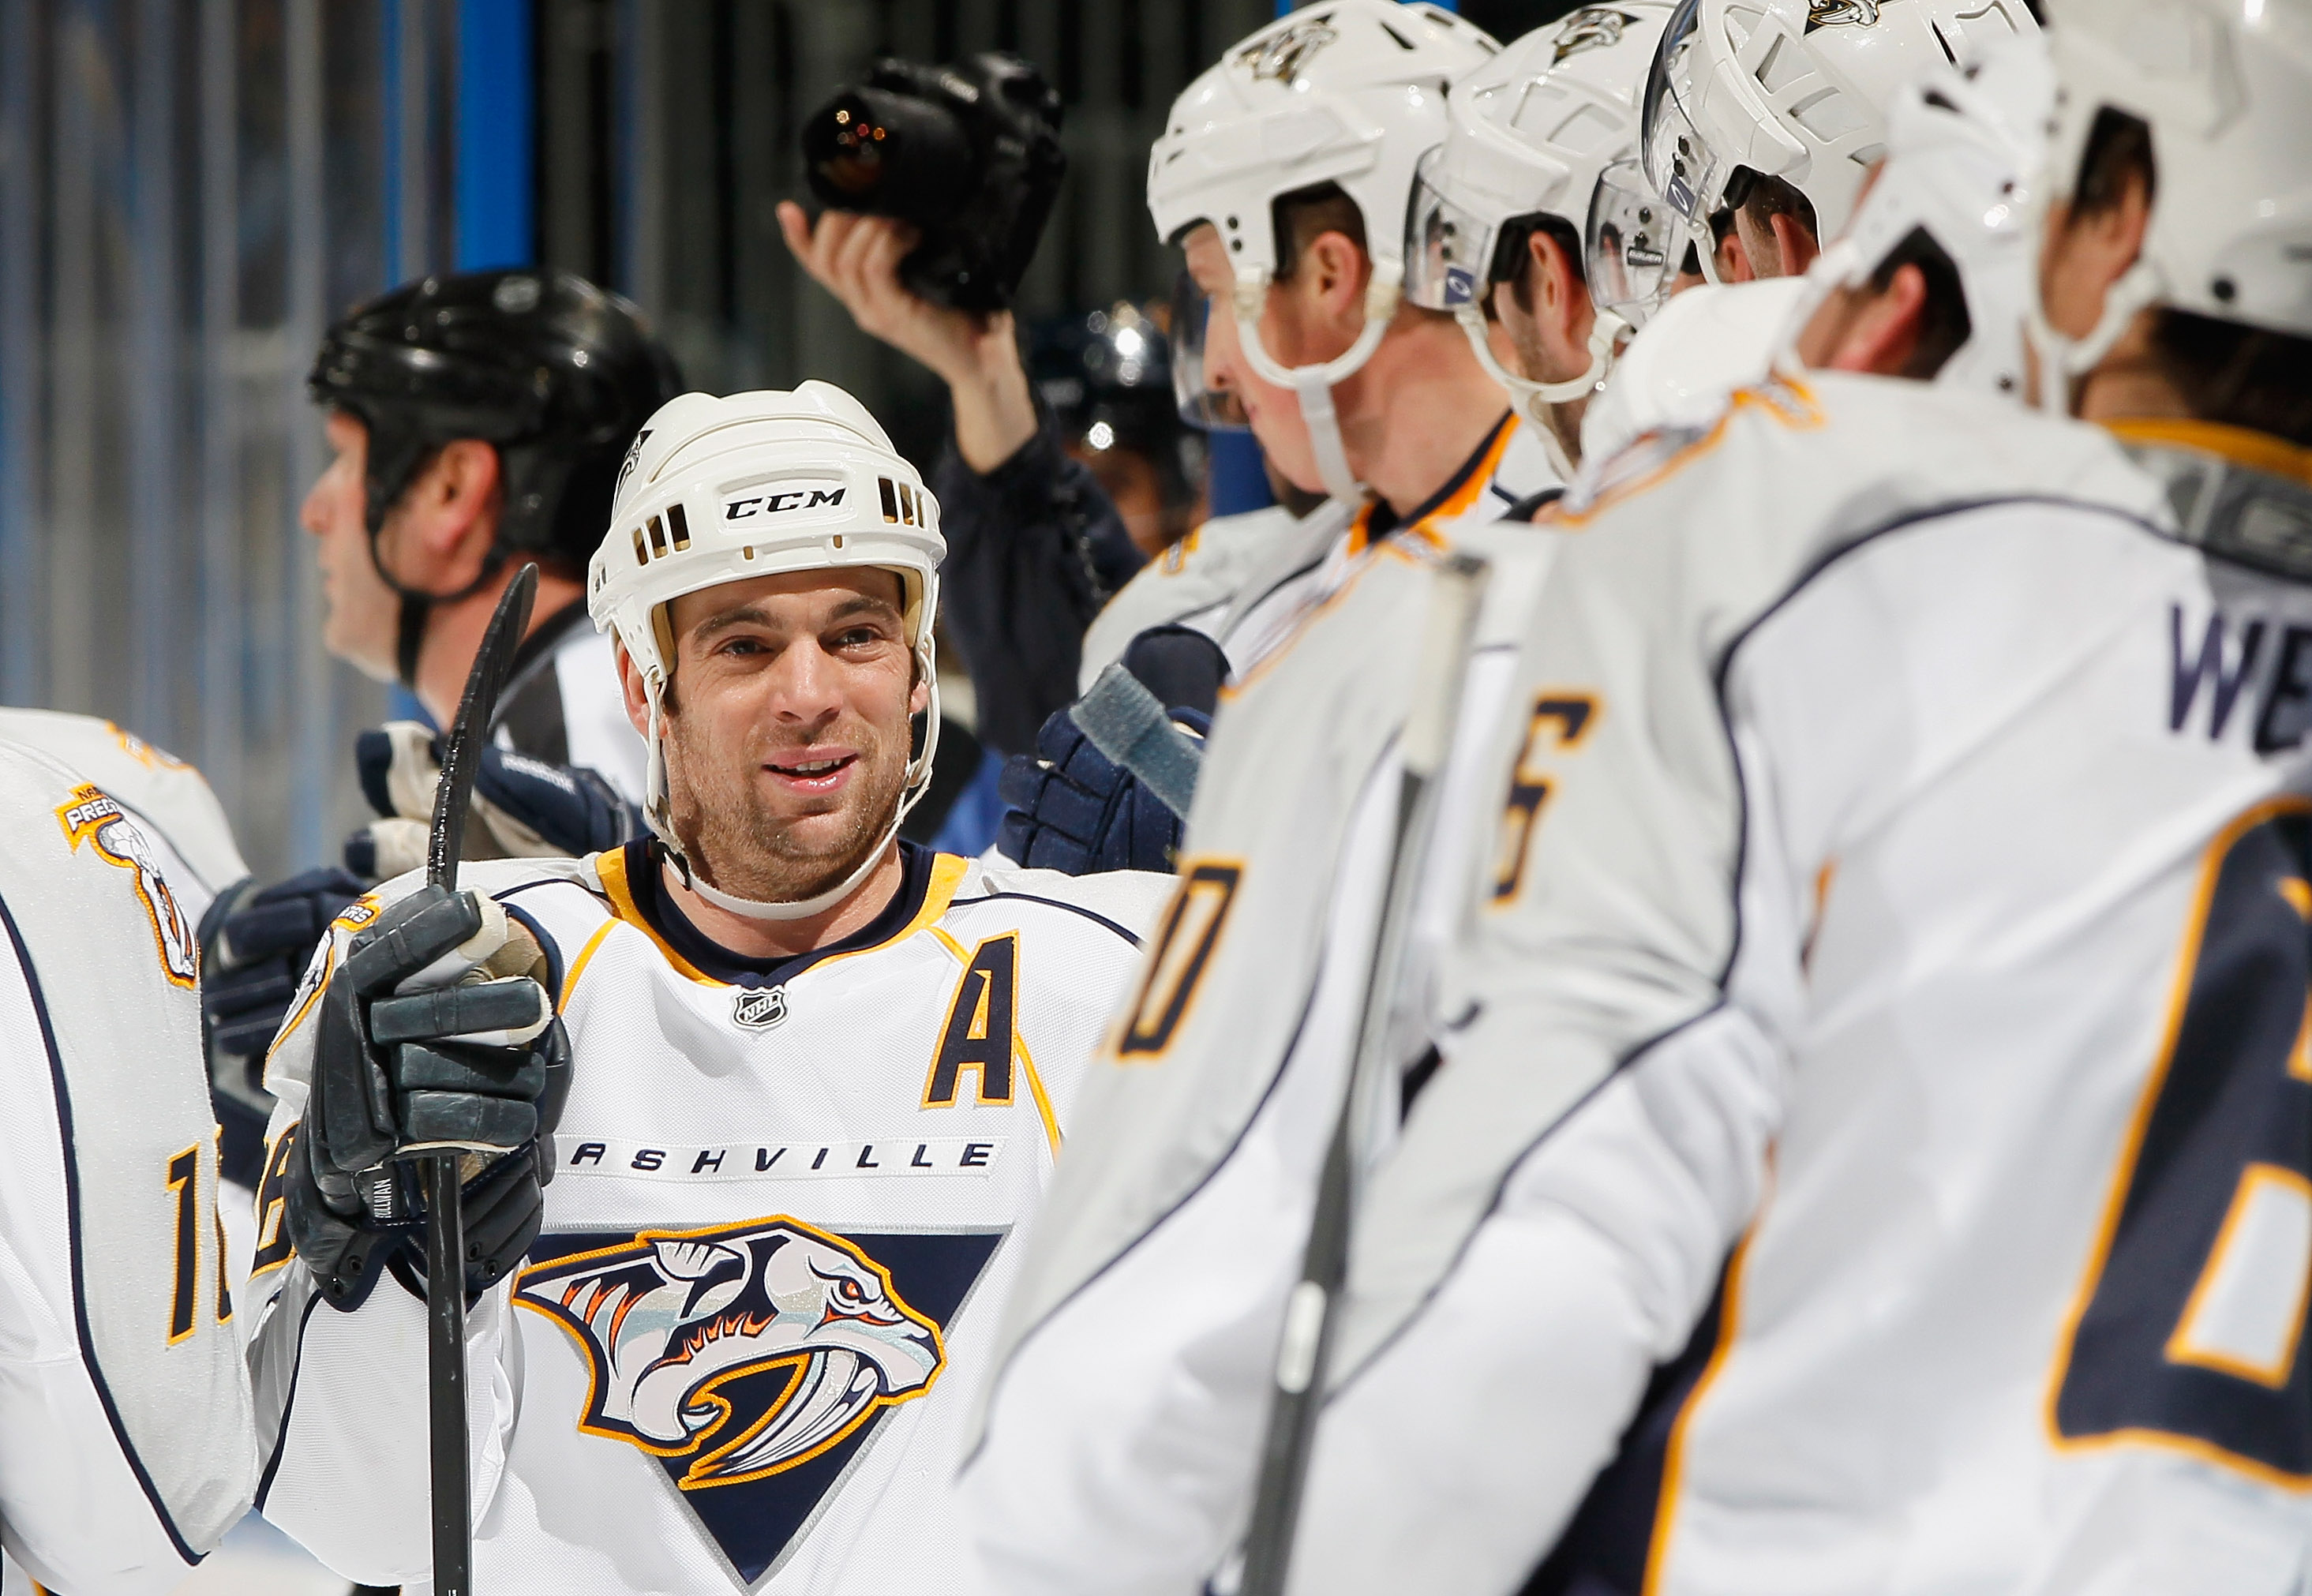 ATLANTA, GA - DECEMBER 06:  Steve Sullivan #26 of the Nashville Predators celebrates with the bench after scoring a goal against the Atlanta Thrashers at Philips Arena on December 6, 2010 in Atlanta, Georgia.  (Photo by Kevin C. Cox/Getty Images)